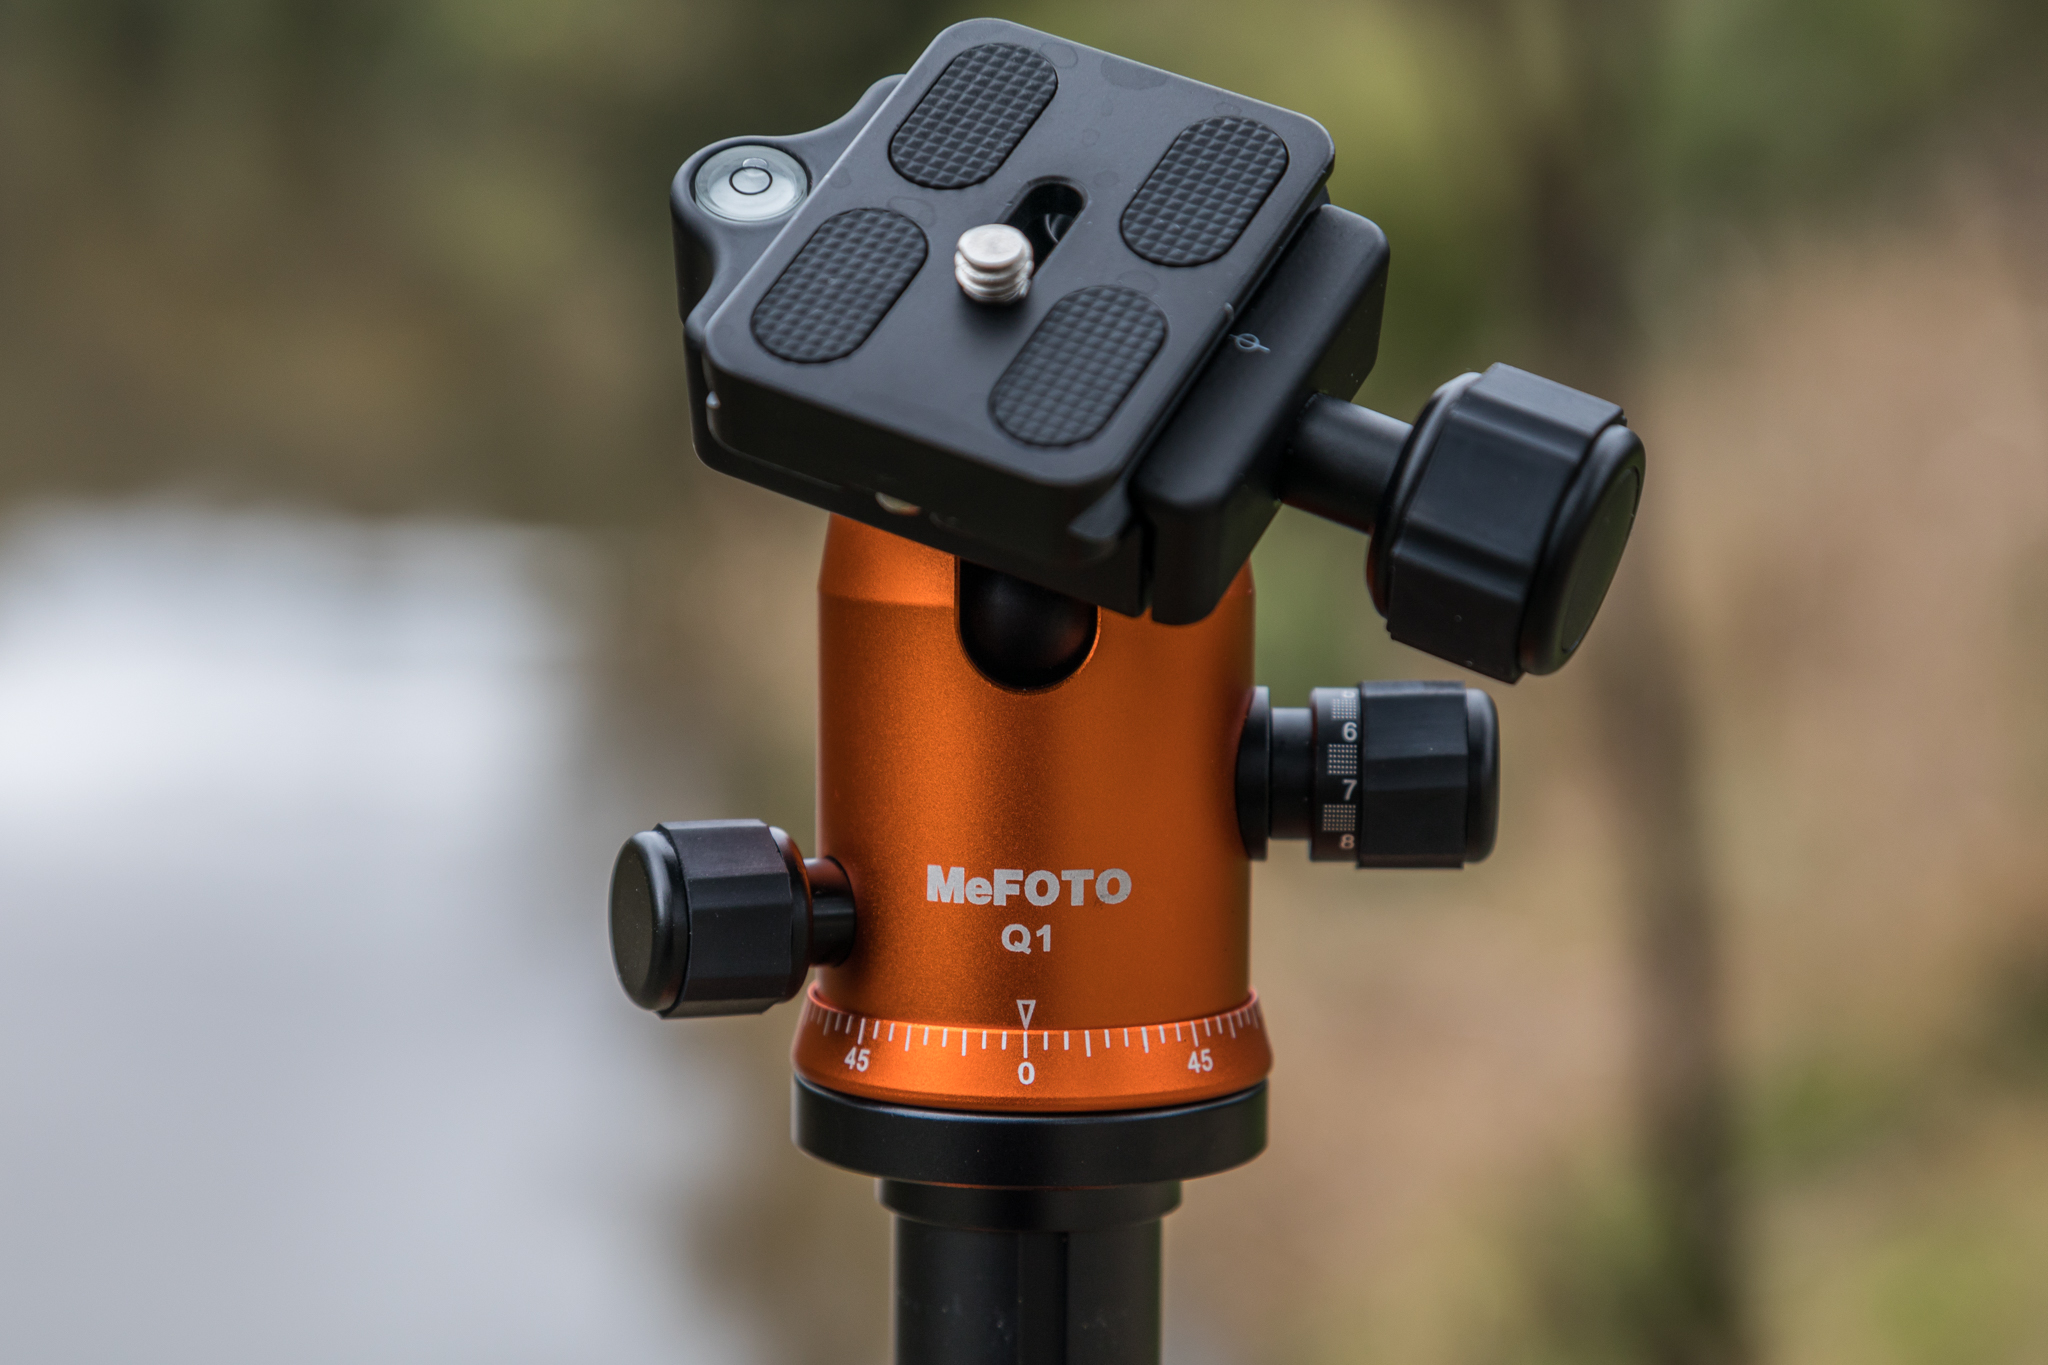 Q1 Double-action ball head, mounting platform and quick release plate.